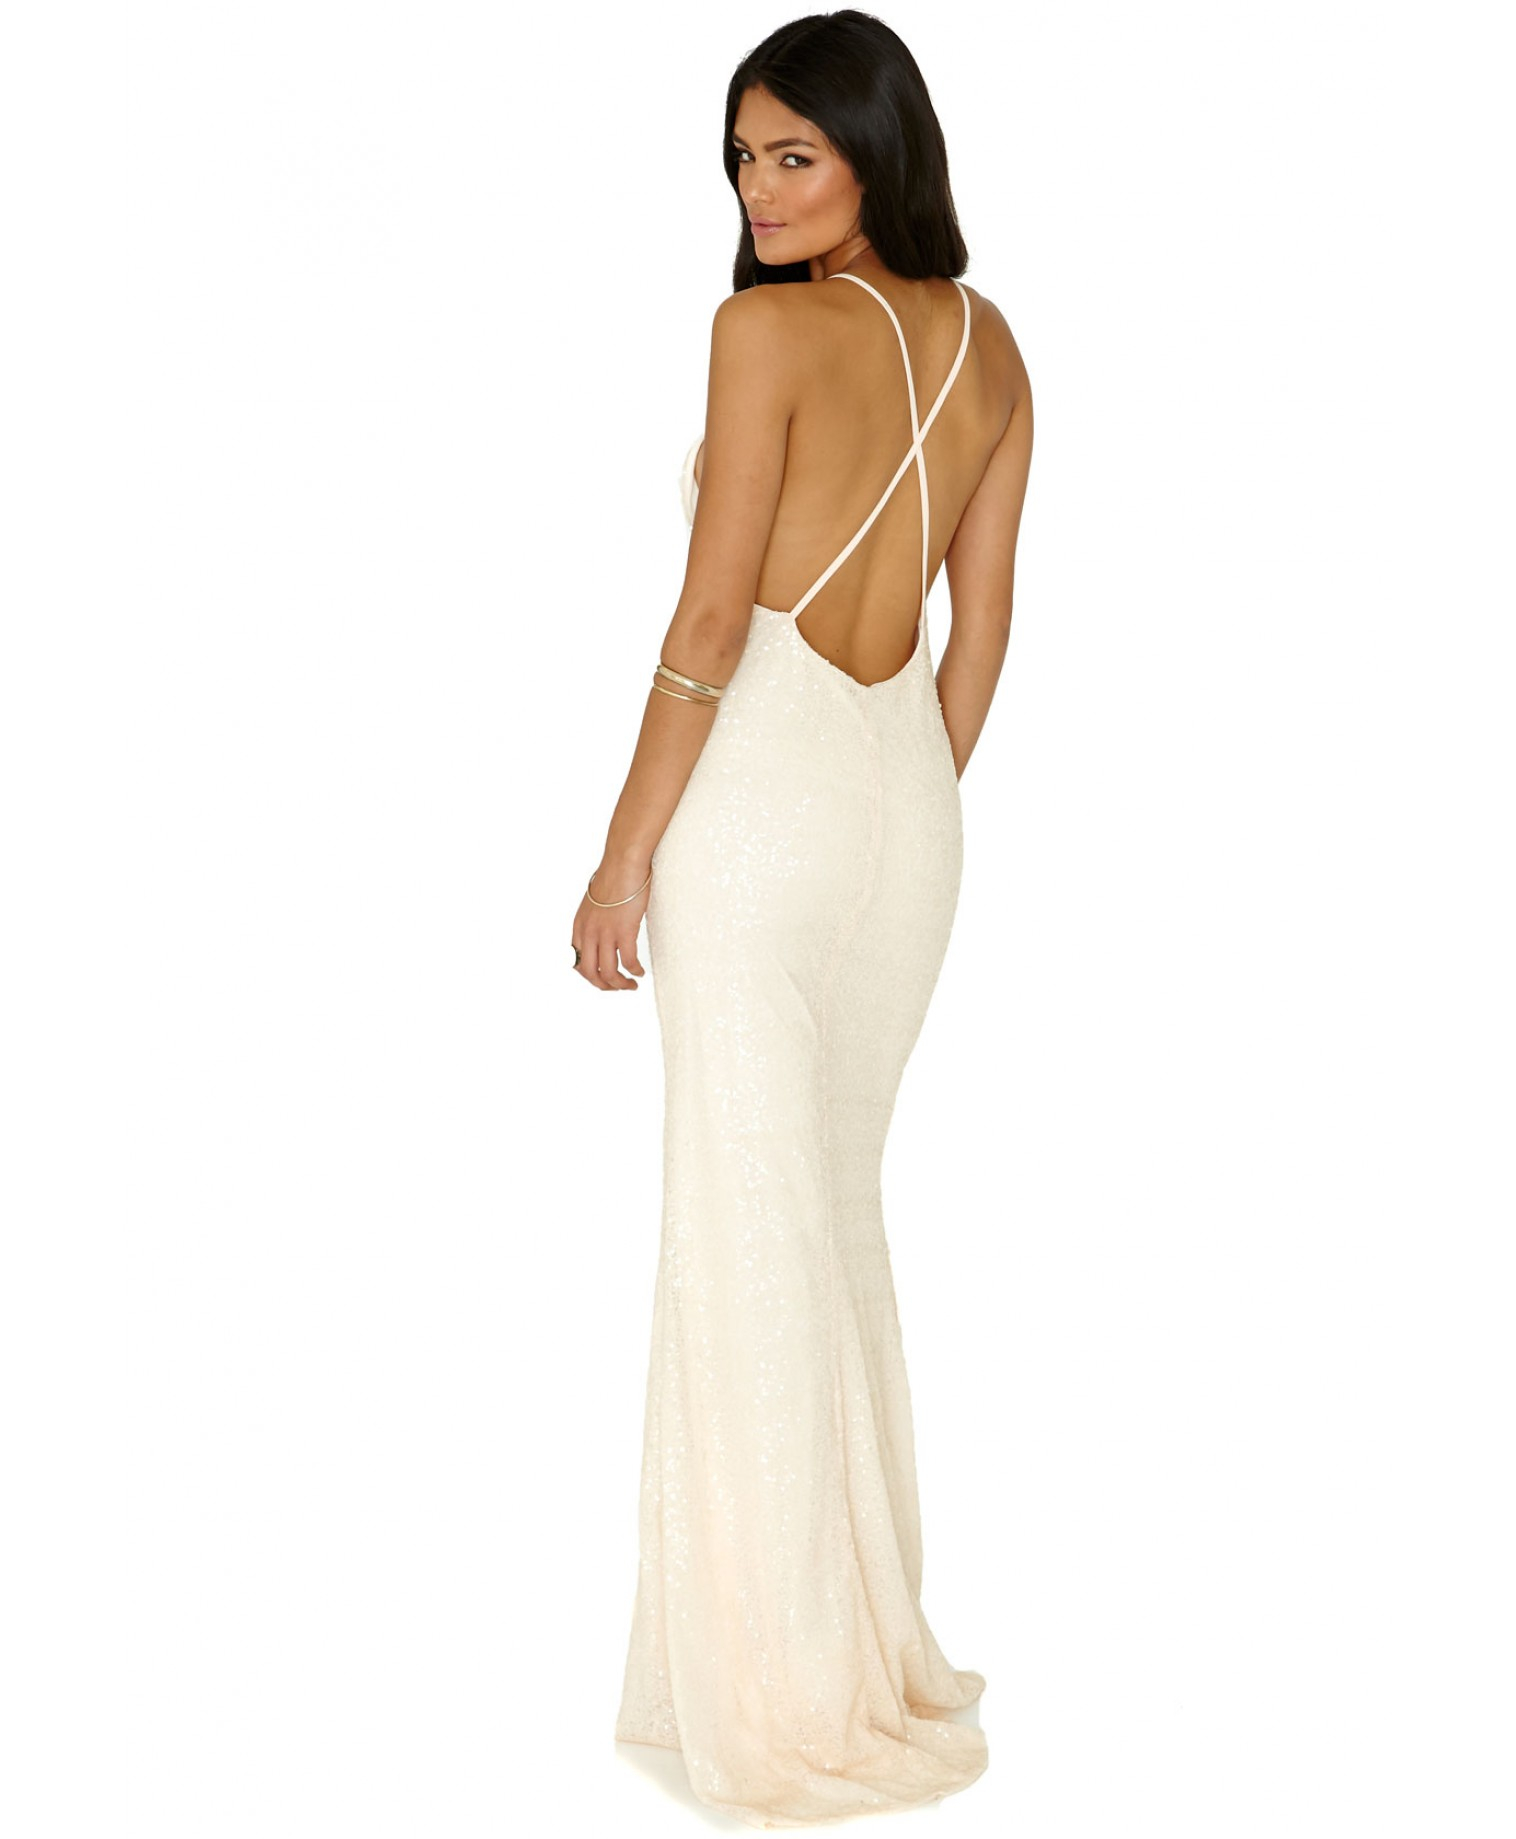 Missguided Skaila Sequin Maxi Dress In Nude in Natural